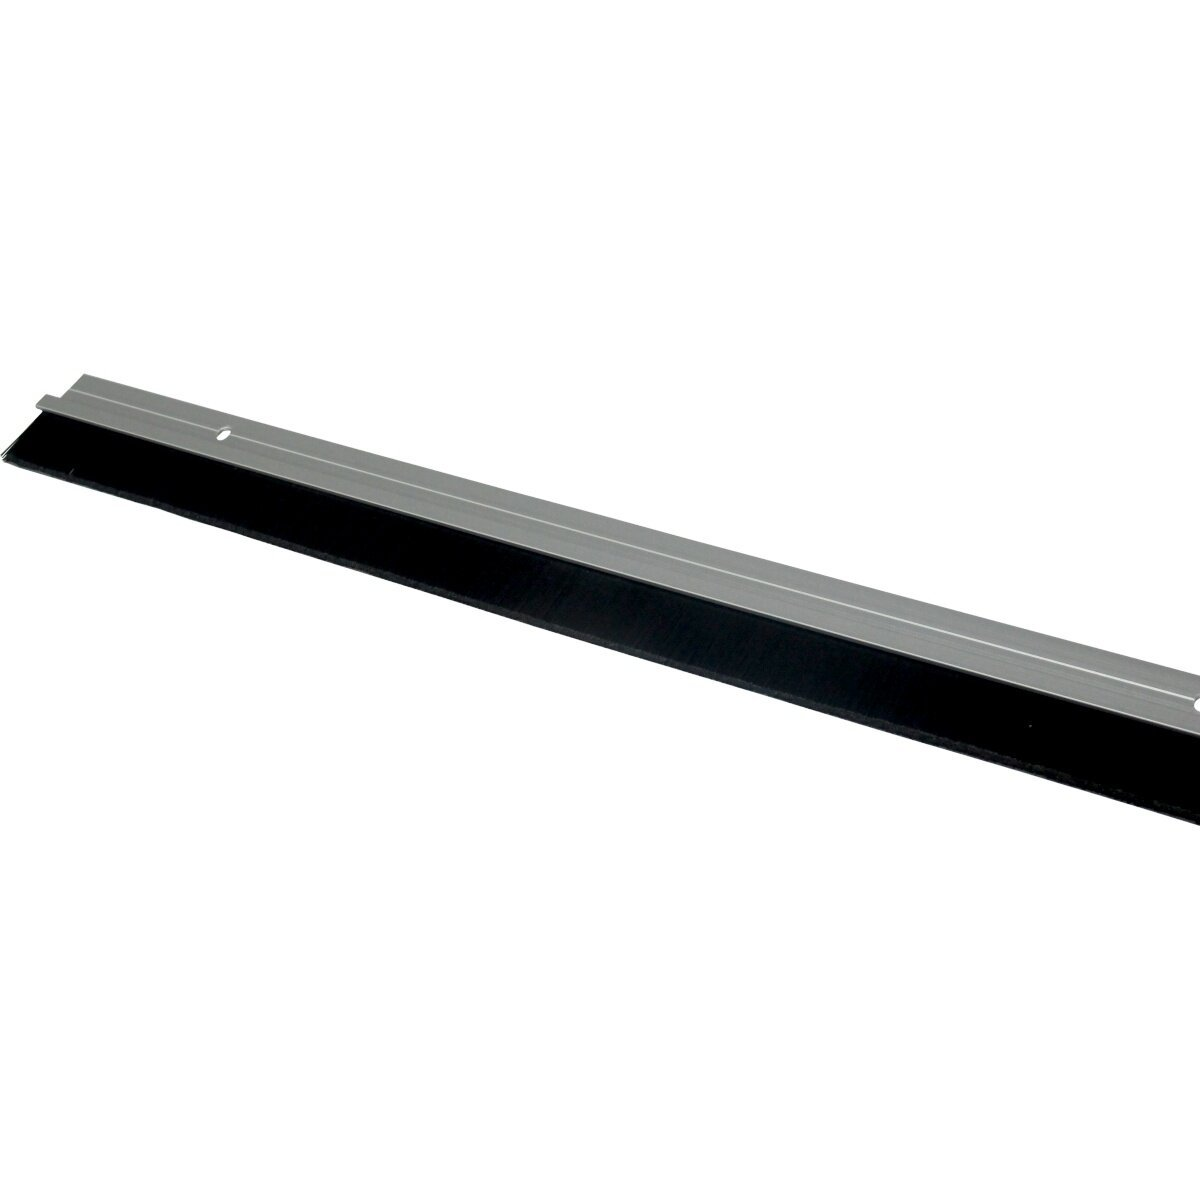 Home Quip Door Weather-strip Seal. For sale at FarmAbility South Africa